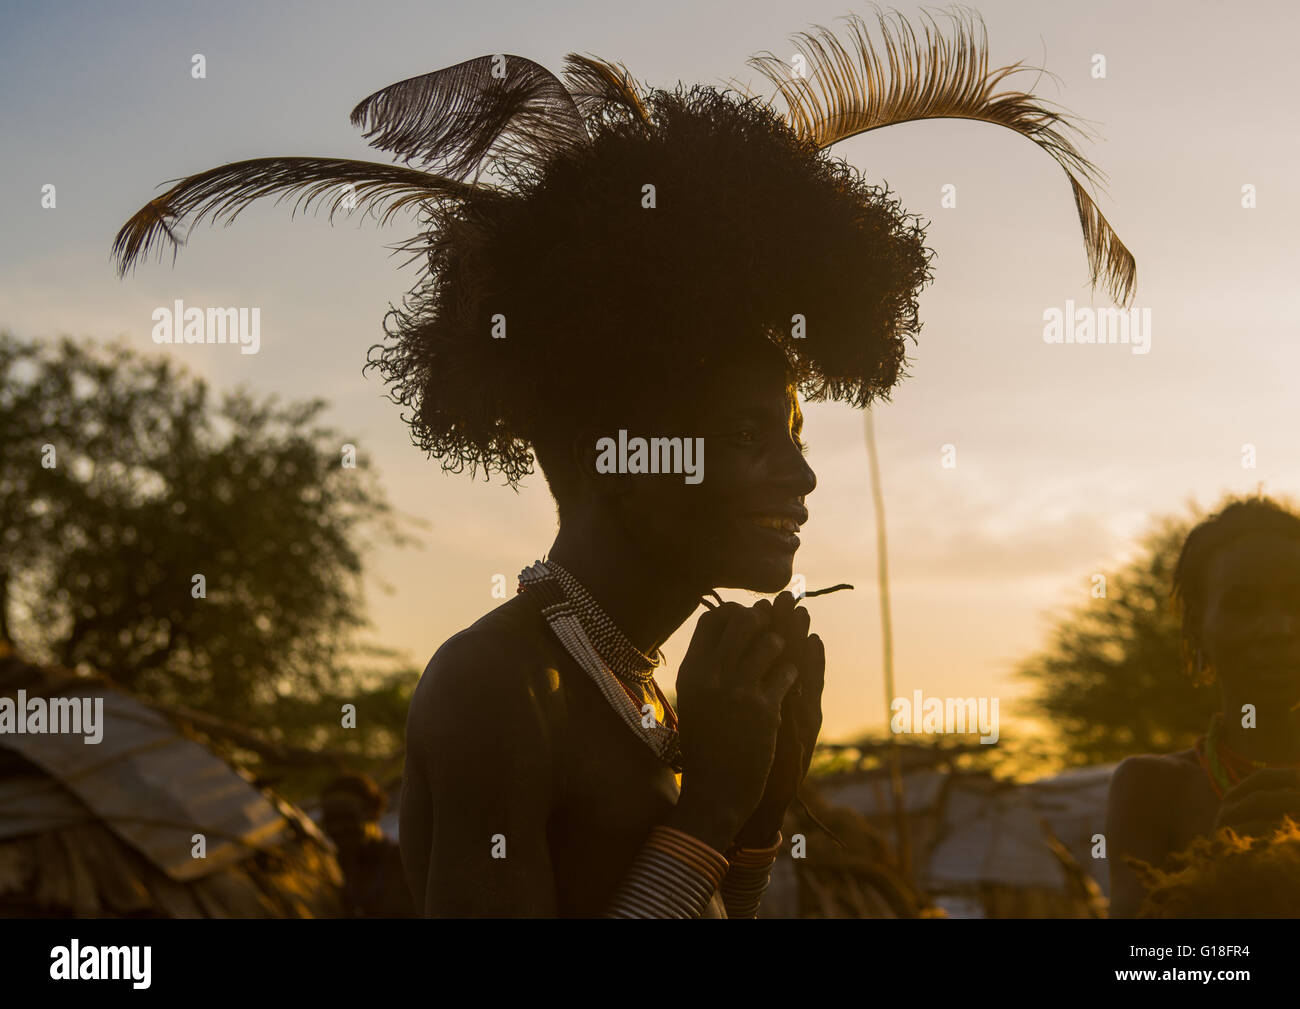 Dassanech man dressing with a ostrich feathers headwear for dimi ceremony to celebrate circumcision of the teenagers, - Stock Image